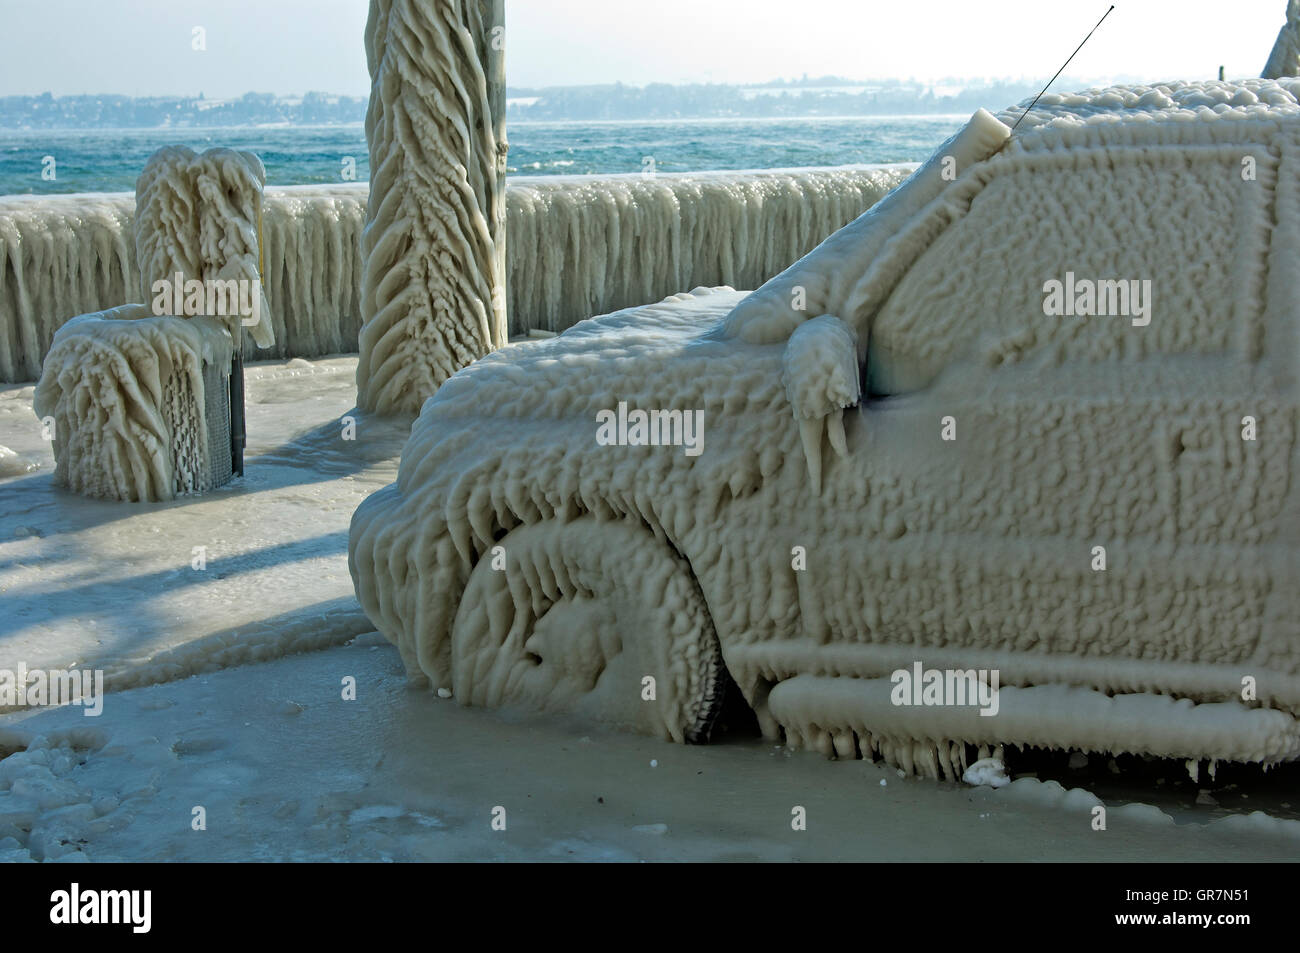 Car Covered With A Thick Layer Of Ice Parked In A Street Along Lake Geneva, Versoix, Switzerland - Stock Image